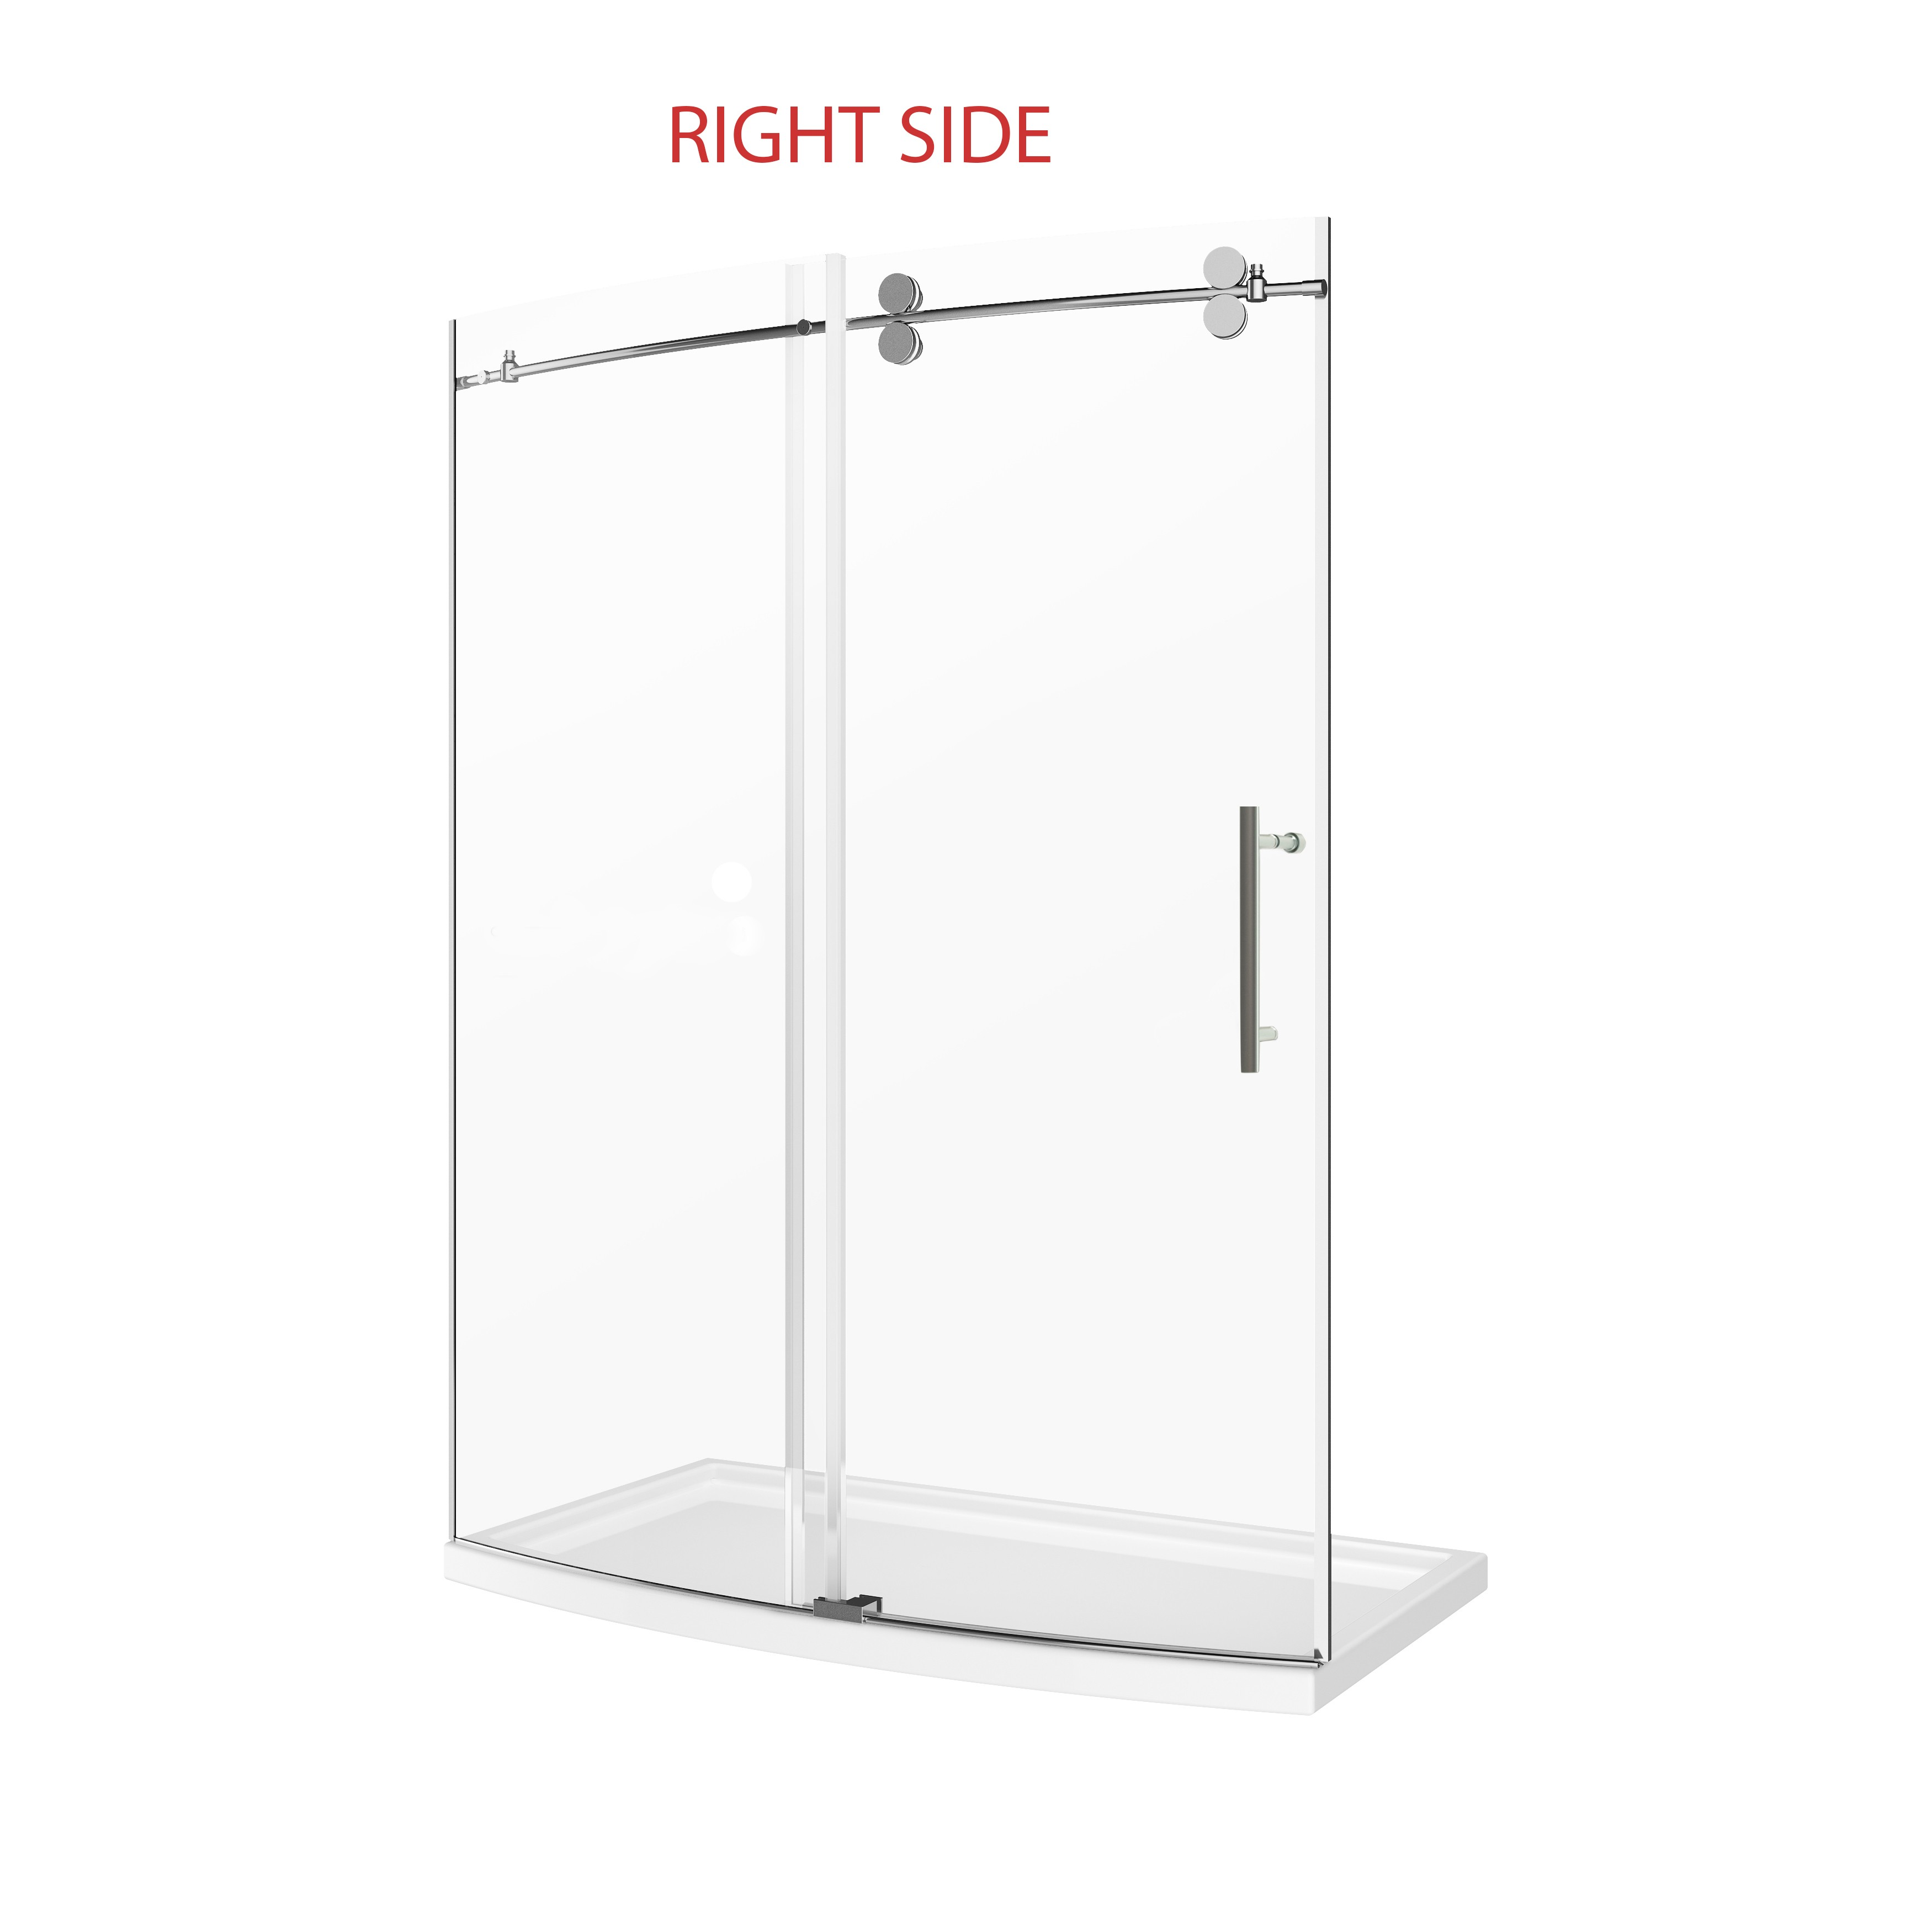 A&E BATH AND SHOWER SK-C-6034-R TINA 60 INCH CURVED SHOWER DOOR WITH BASE-RIGHT OPENING